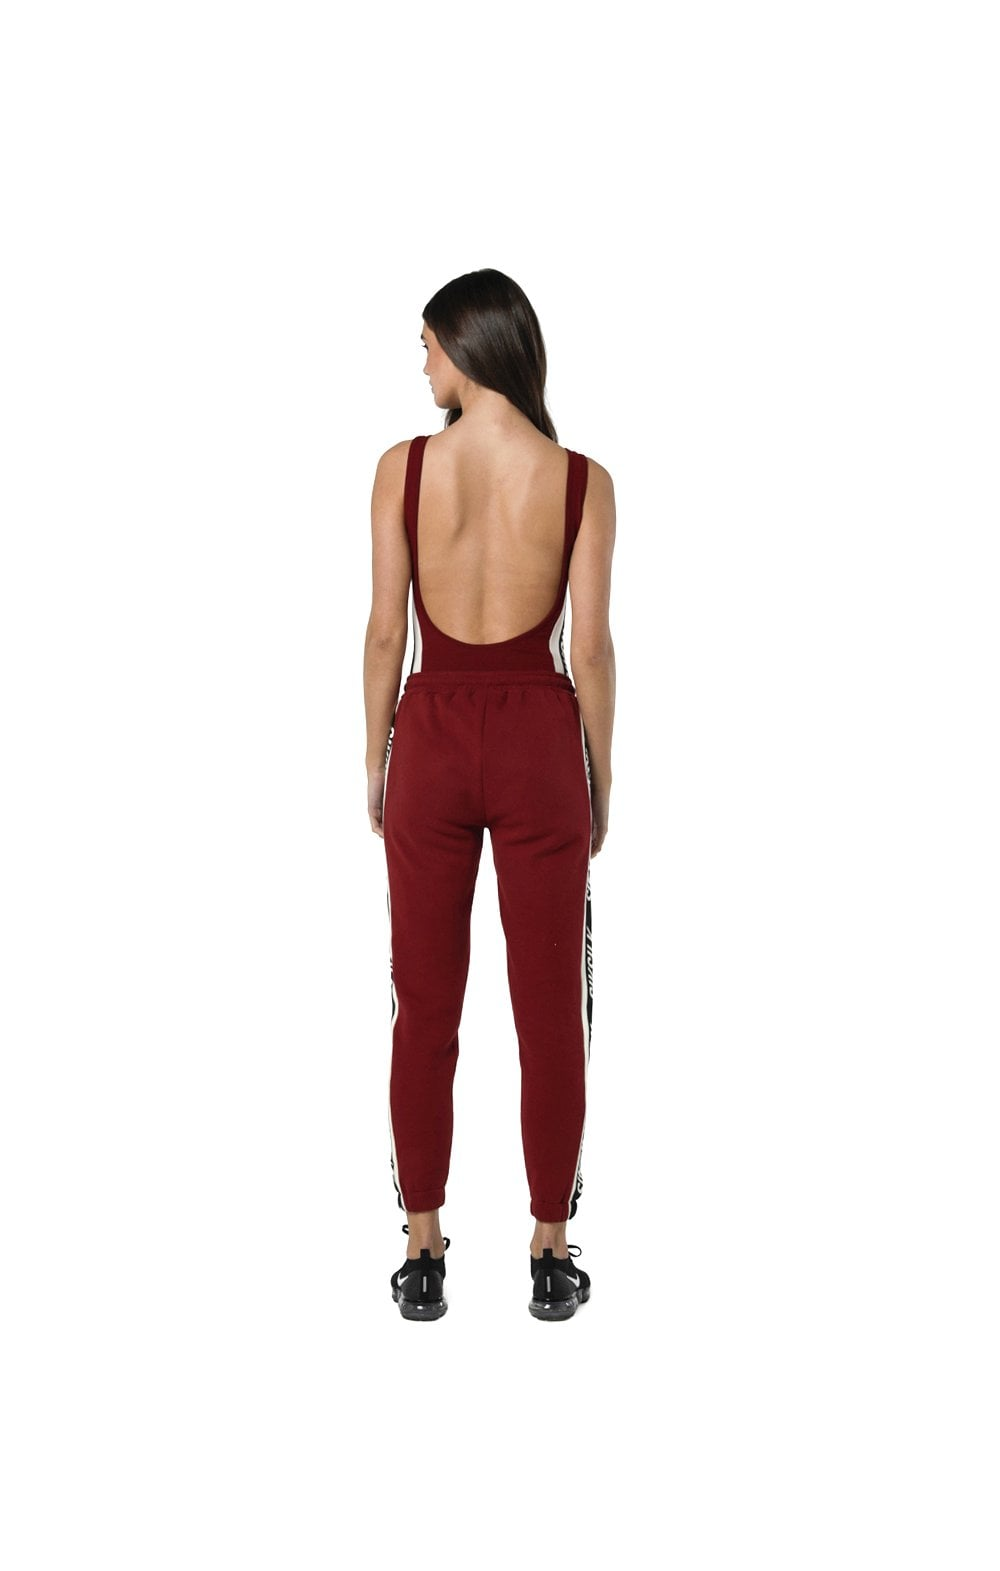 Load image into Gallery viewer, SikSilk Backless Bodysuit - Rhubarb (5)